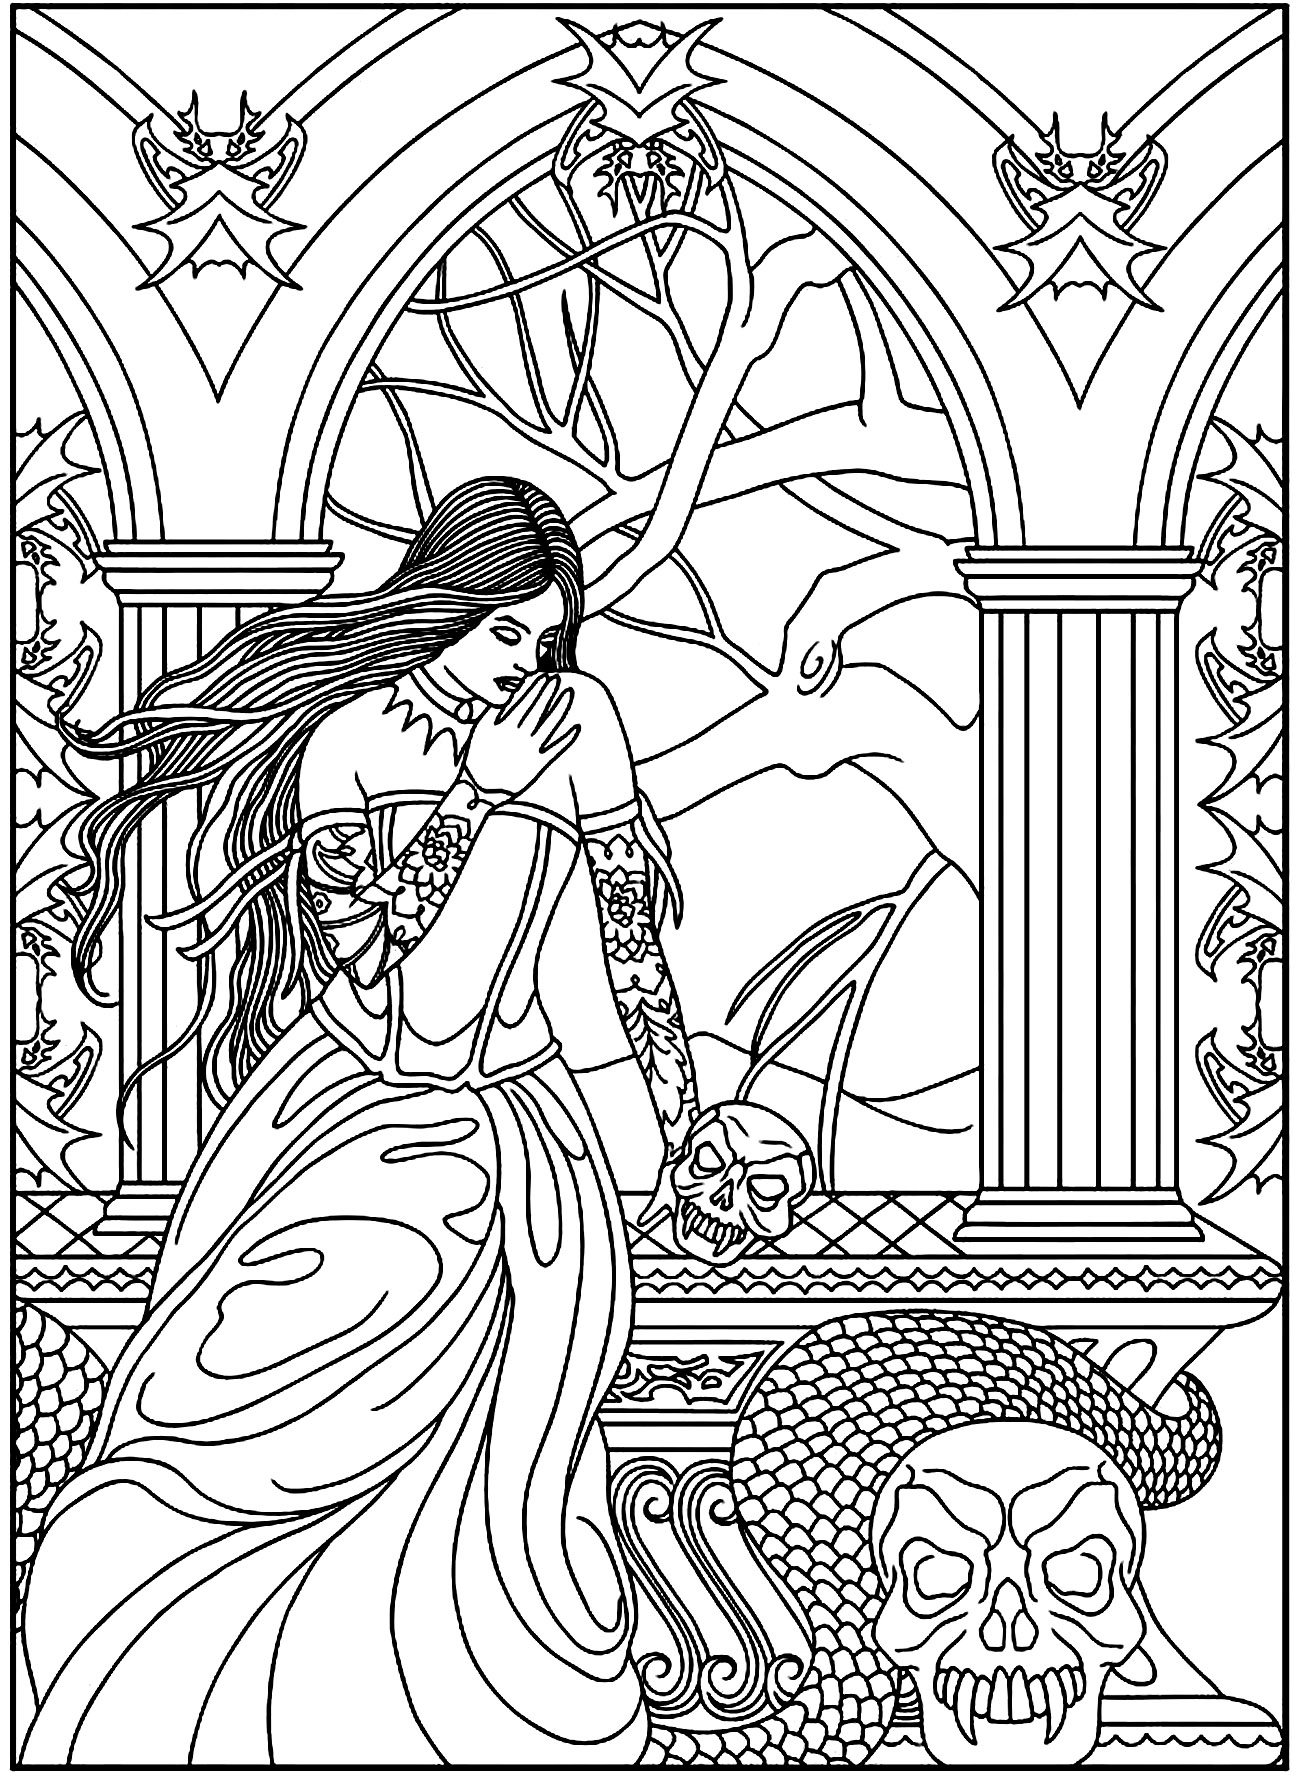 a mysterious woman with a snake and skulls from the gallery myths legends - Fantasy Coloring Pages Adults